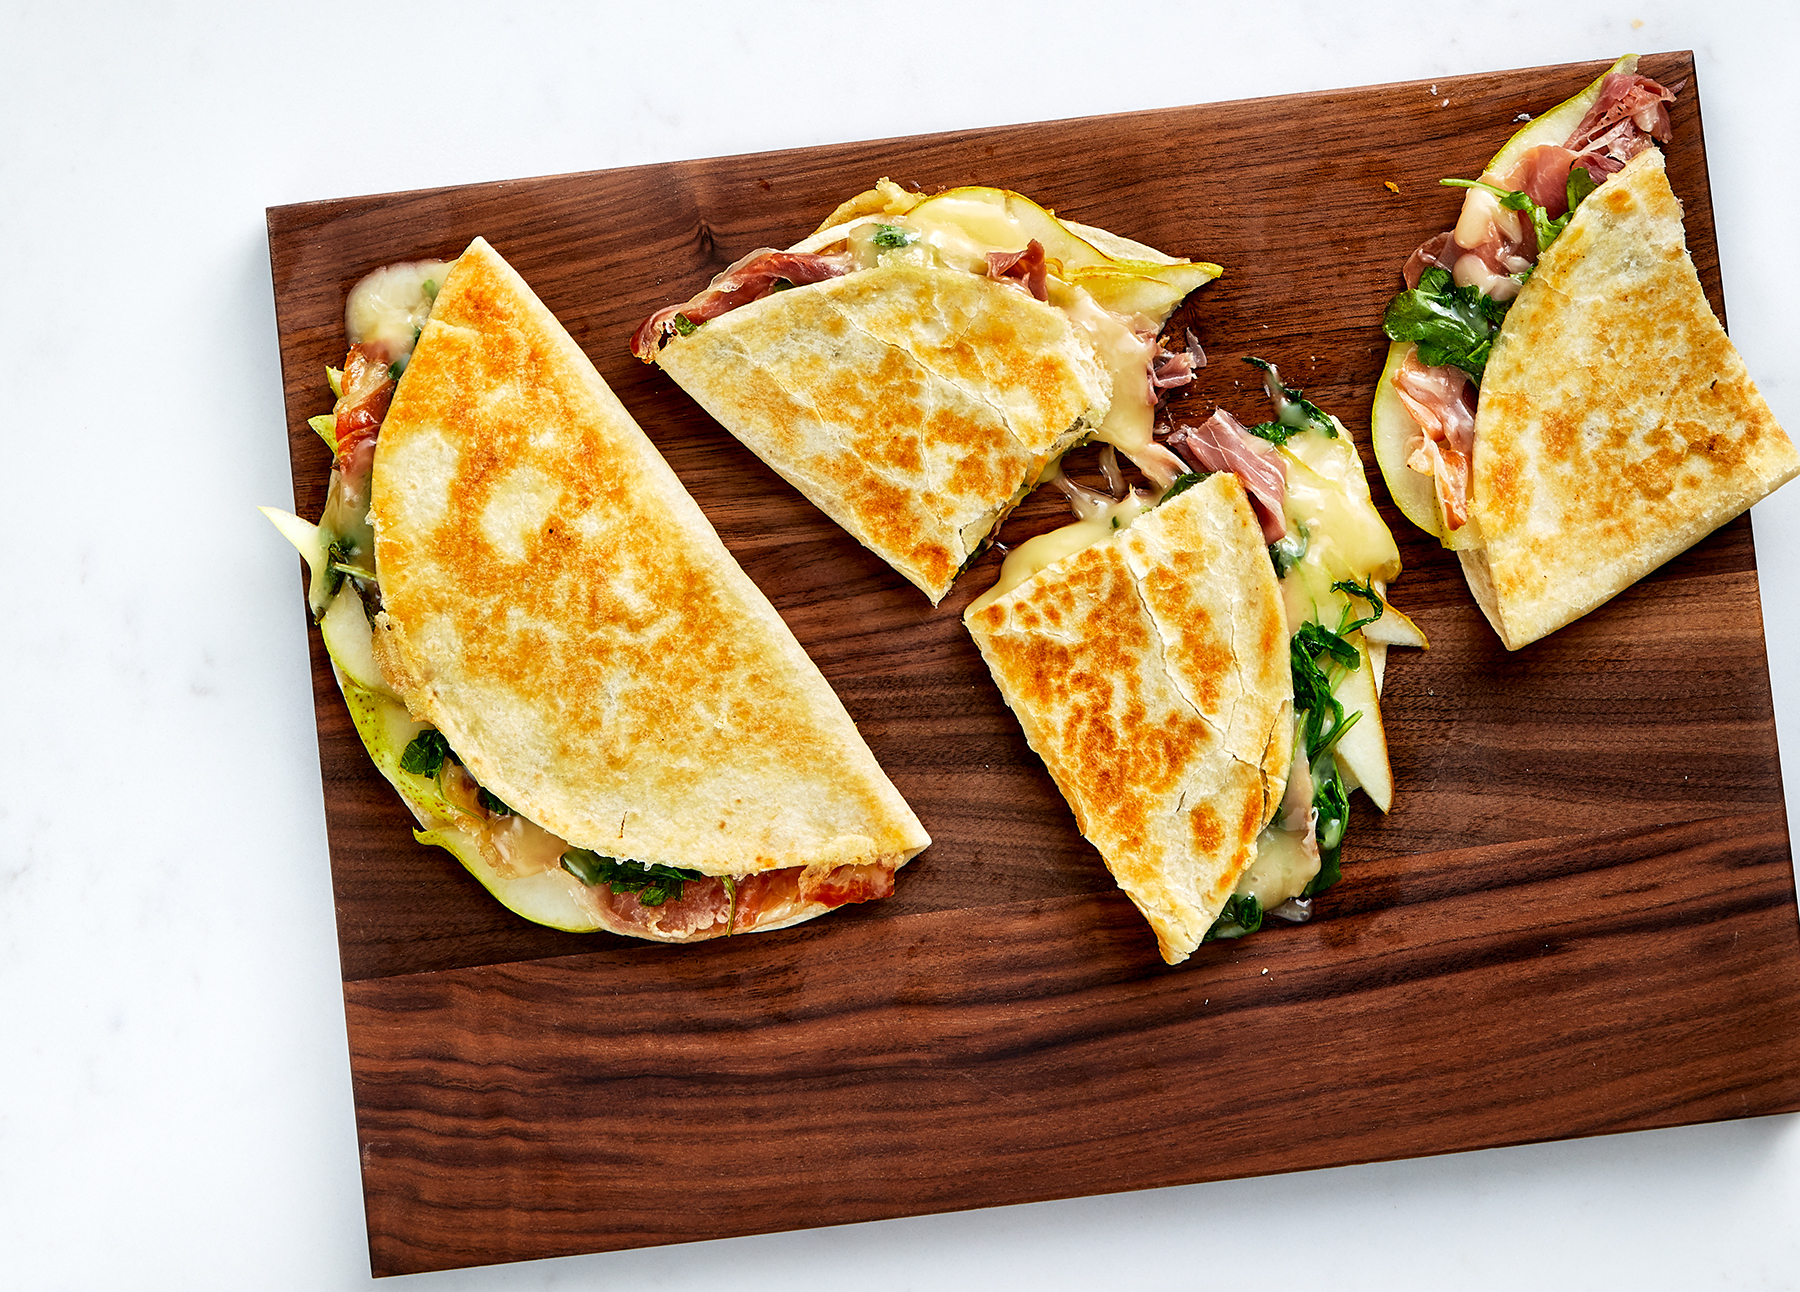 Pear, Prosciutto, and Fontina Quesadillas